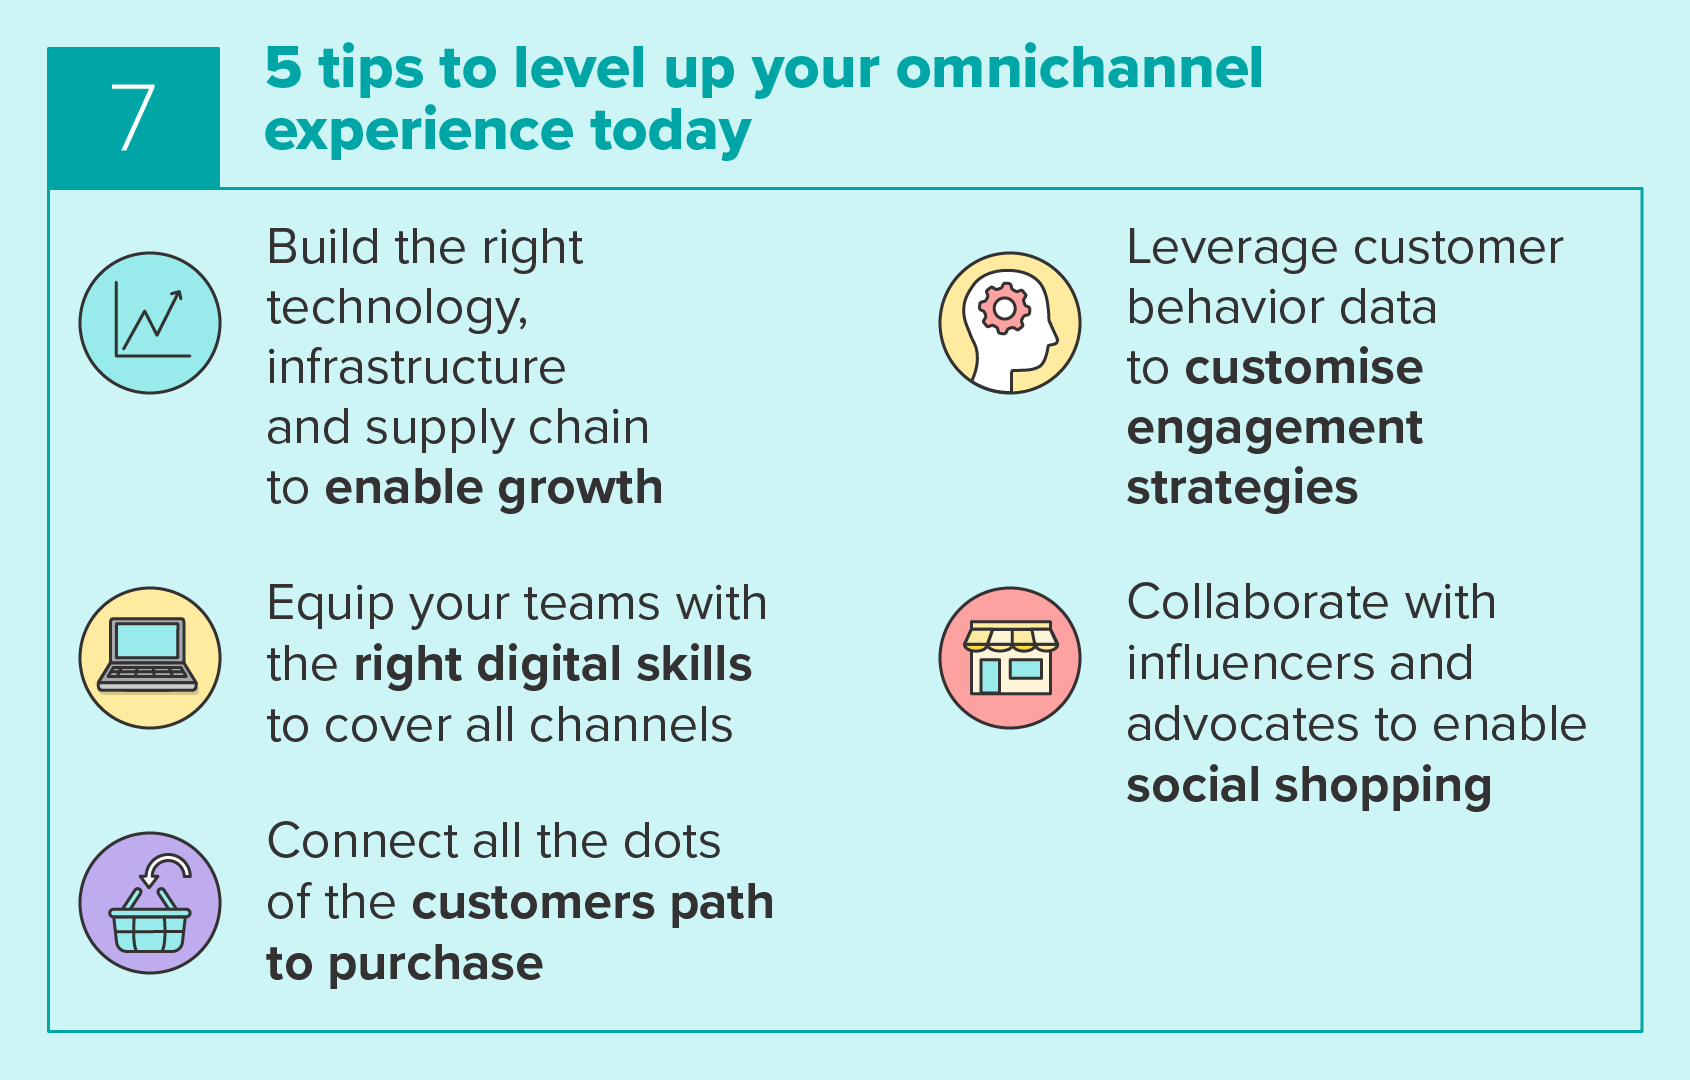 5 tips to level up your omnichannel experience